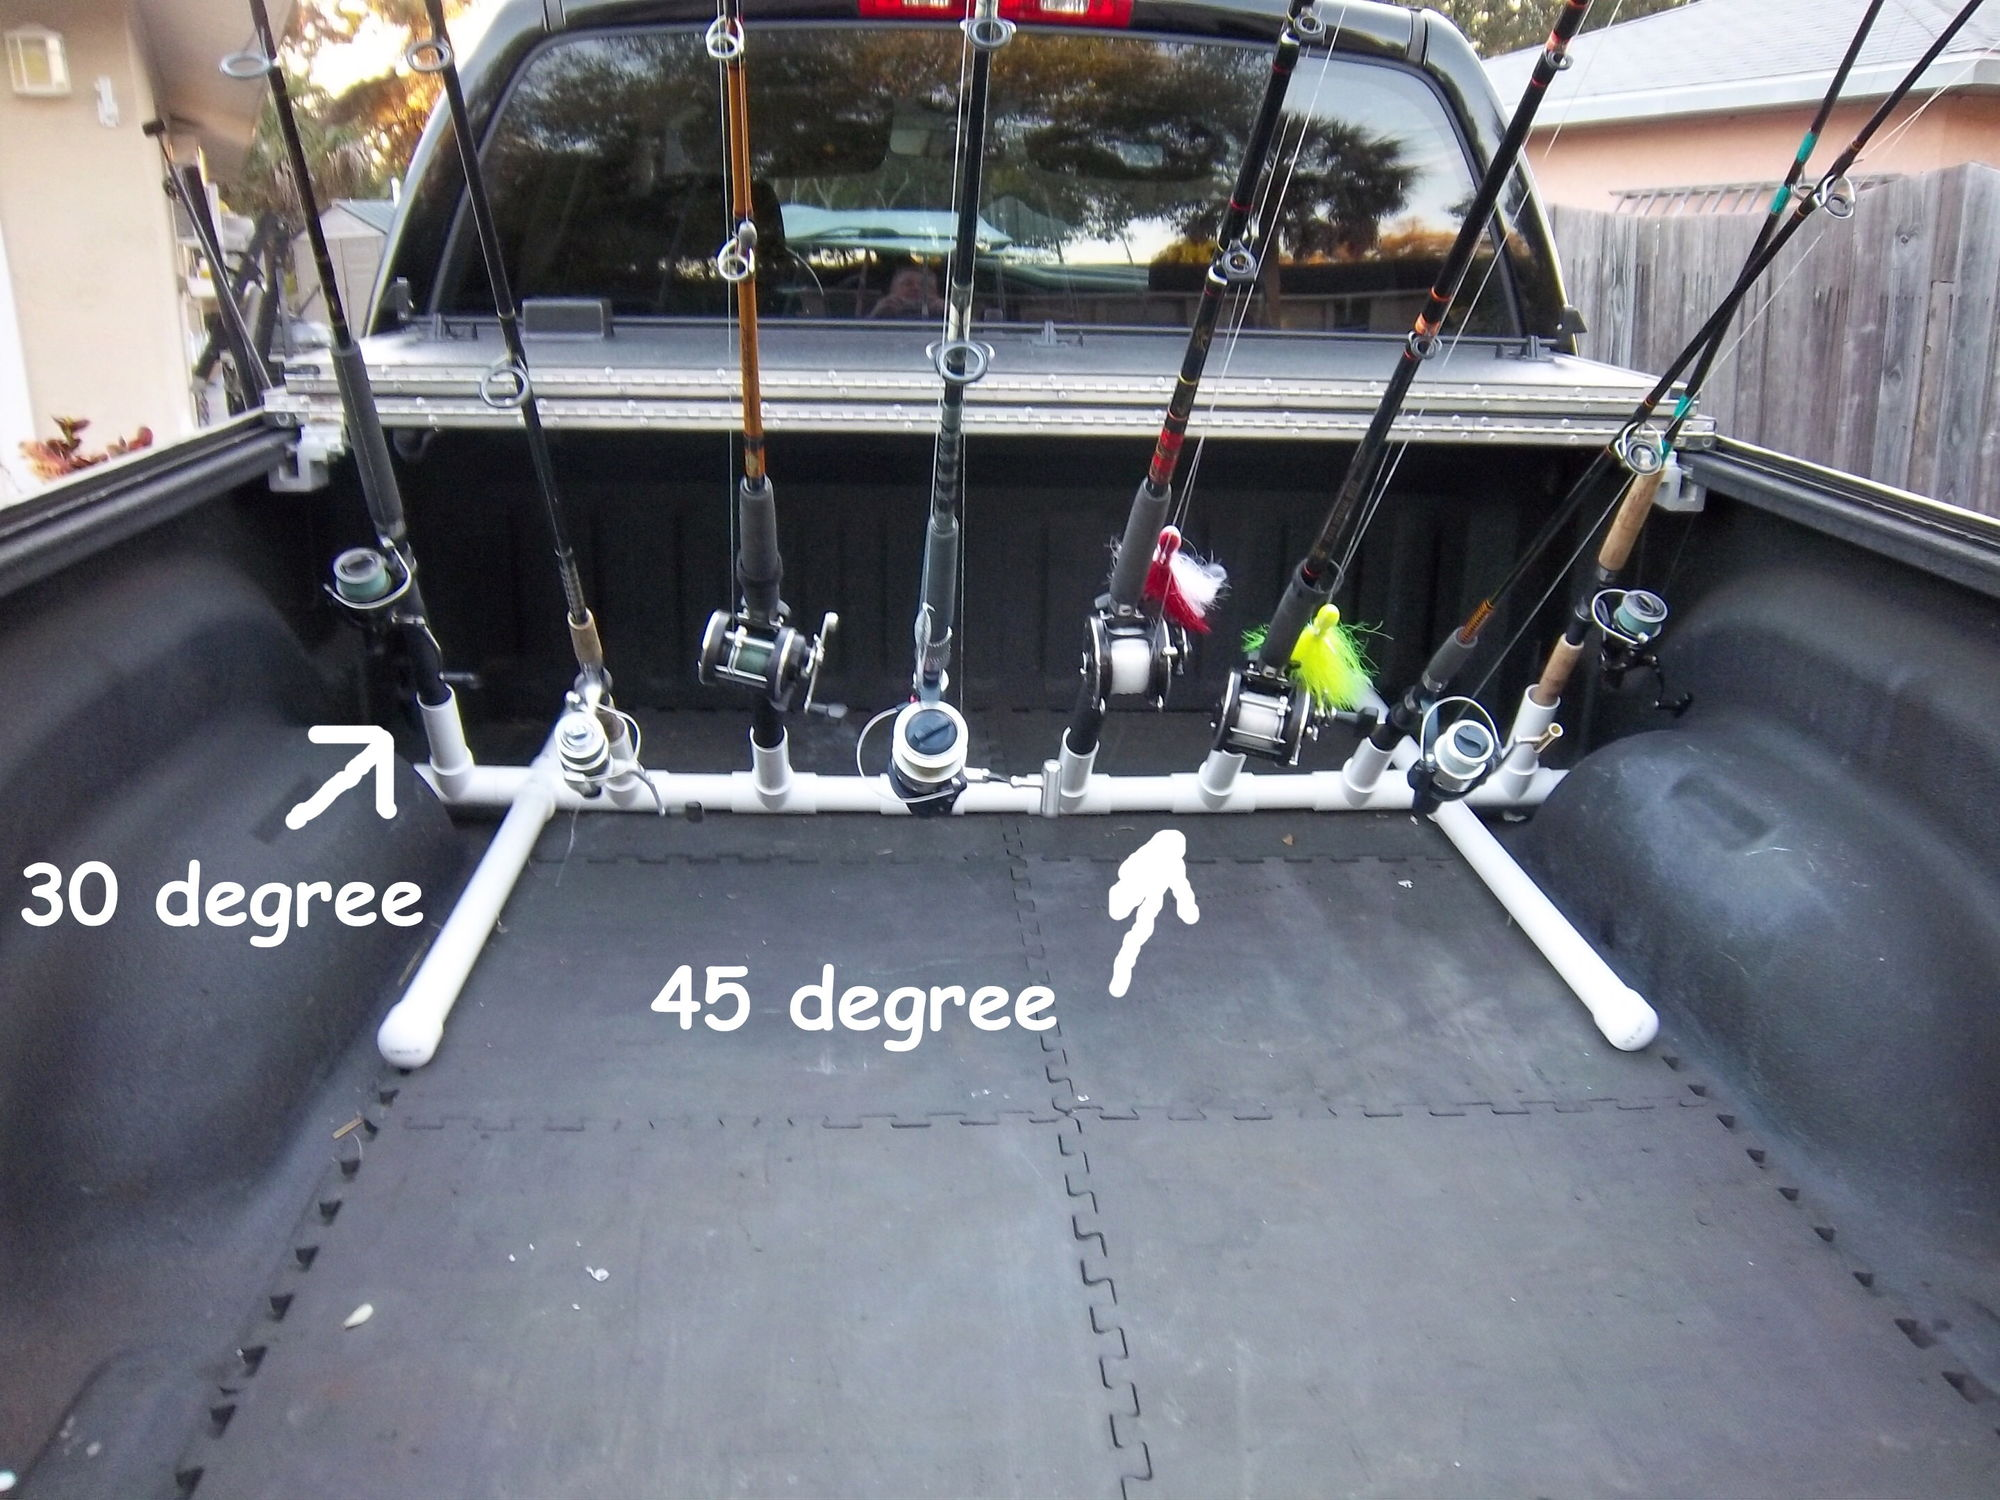 Fishing Pole Holder For Truck Bed 28 Images Diy Truck Bed Toolbox Storage Decorations Diy